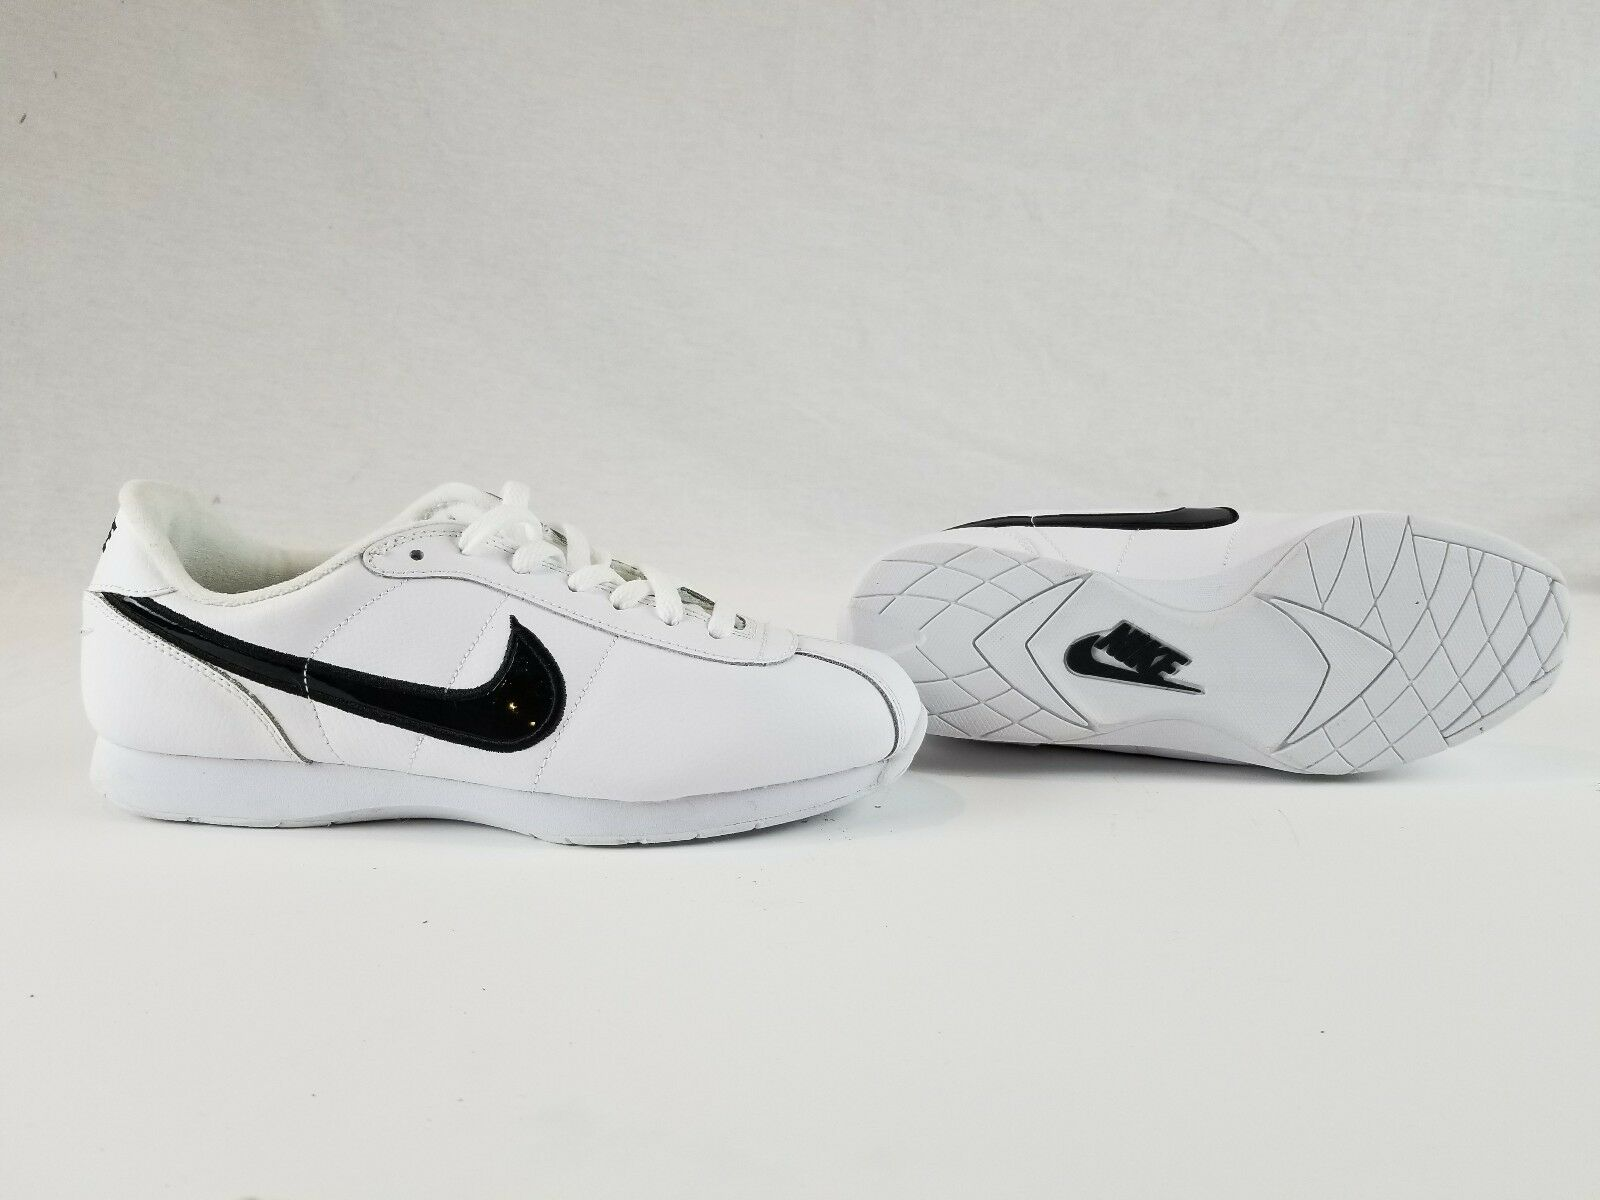 reputable site 95724 84389 Nike Cortez Basic Leather OG Mens Shoes 13 White Varsity Red 882254 164 for  sale online   eBay